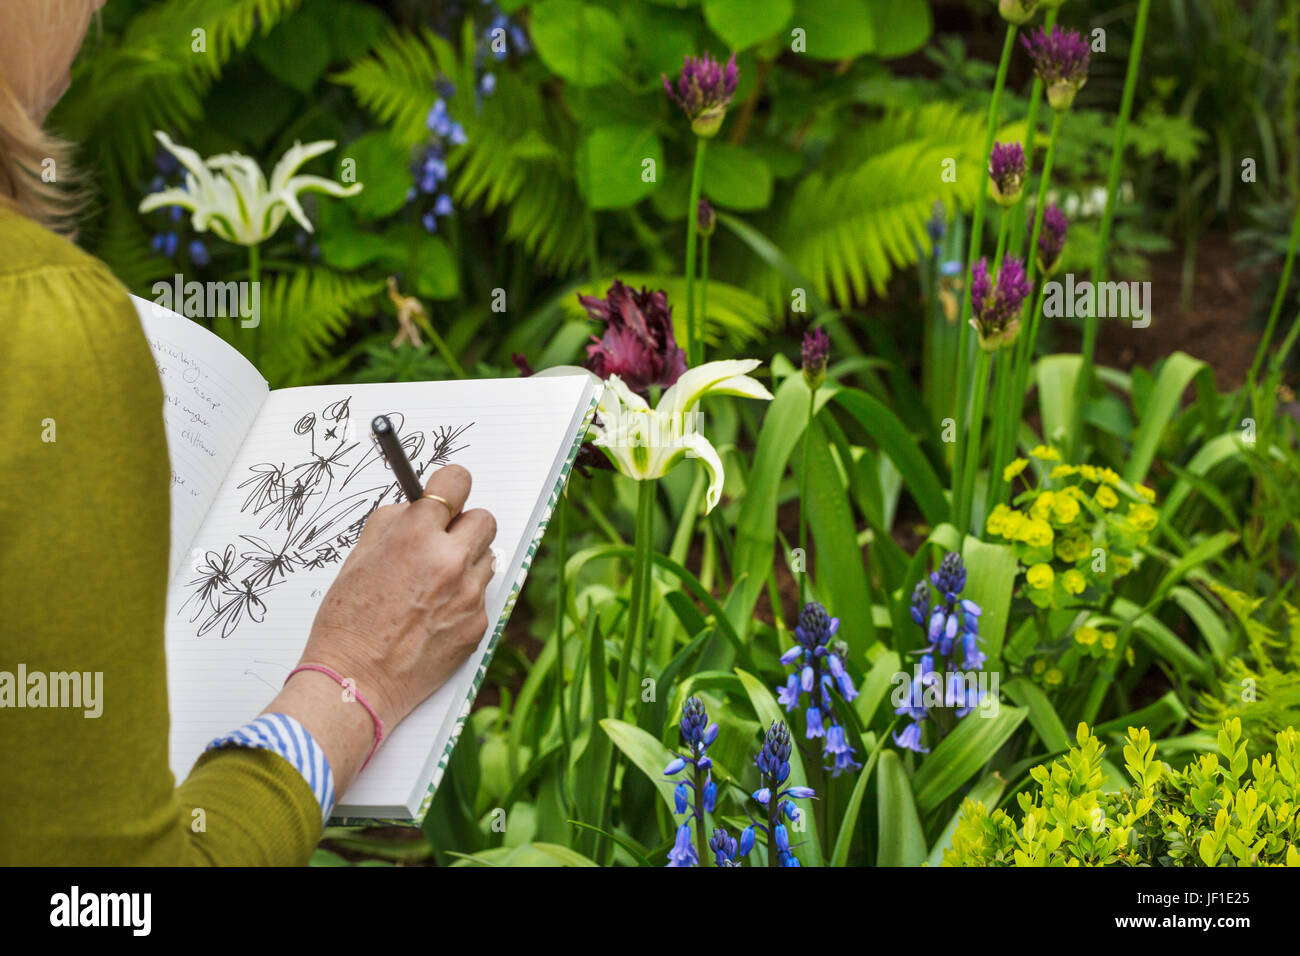 Over the shoulder view of a woman sitting in a garden by a flowerbed, drawing in a sketchbook. - Stock Image